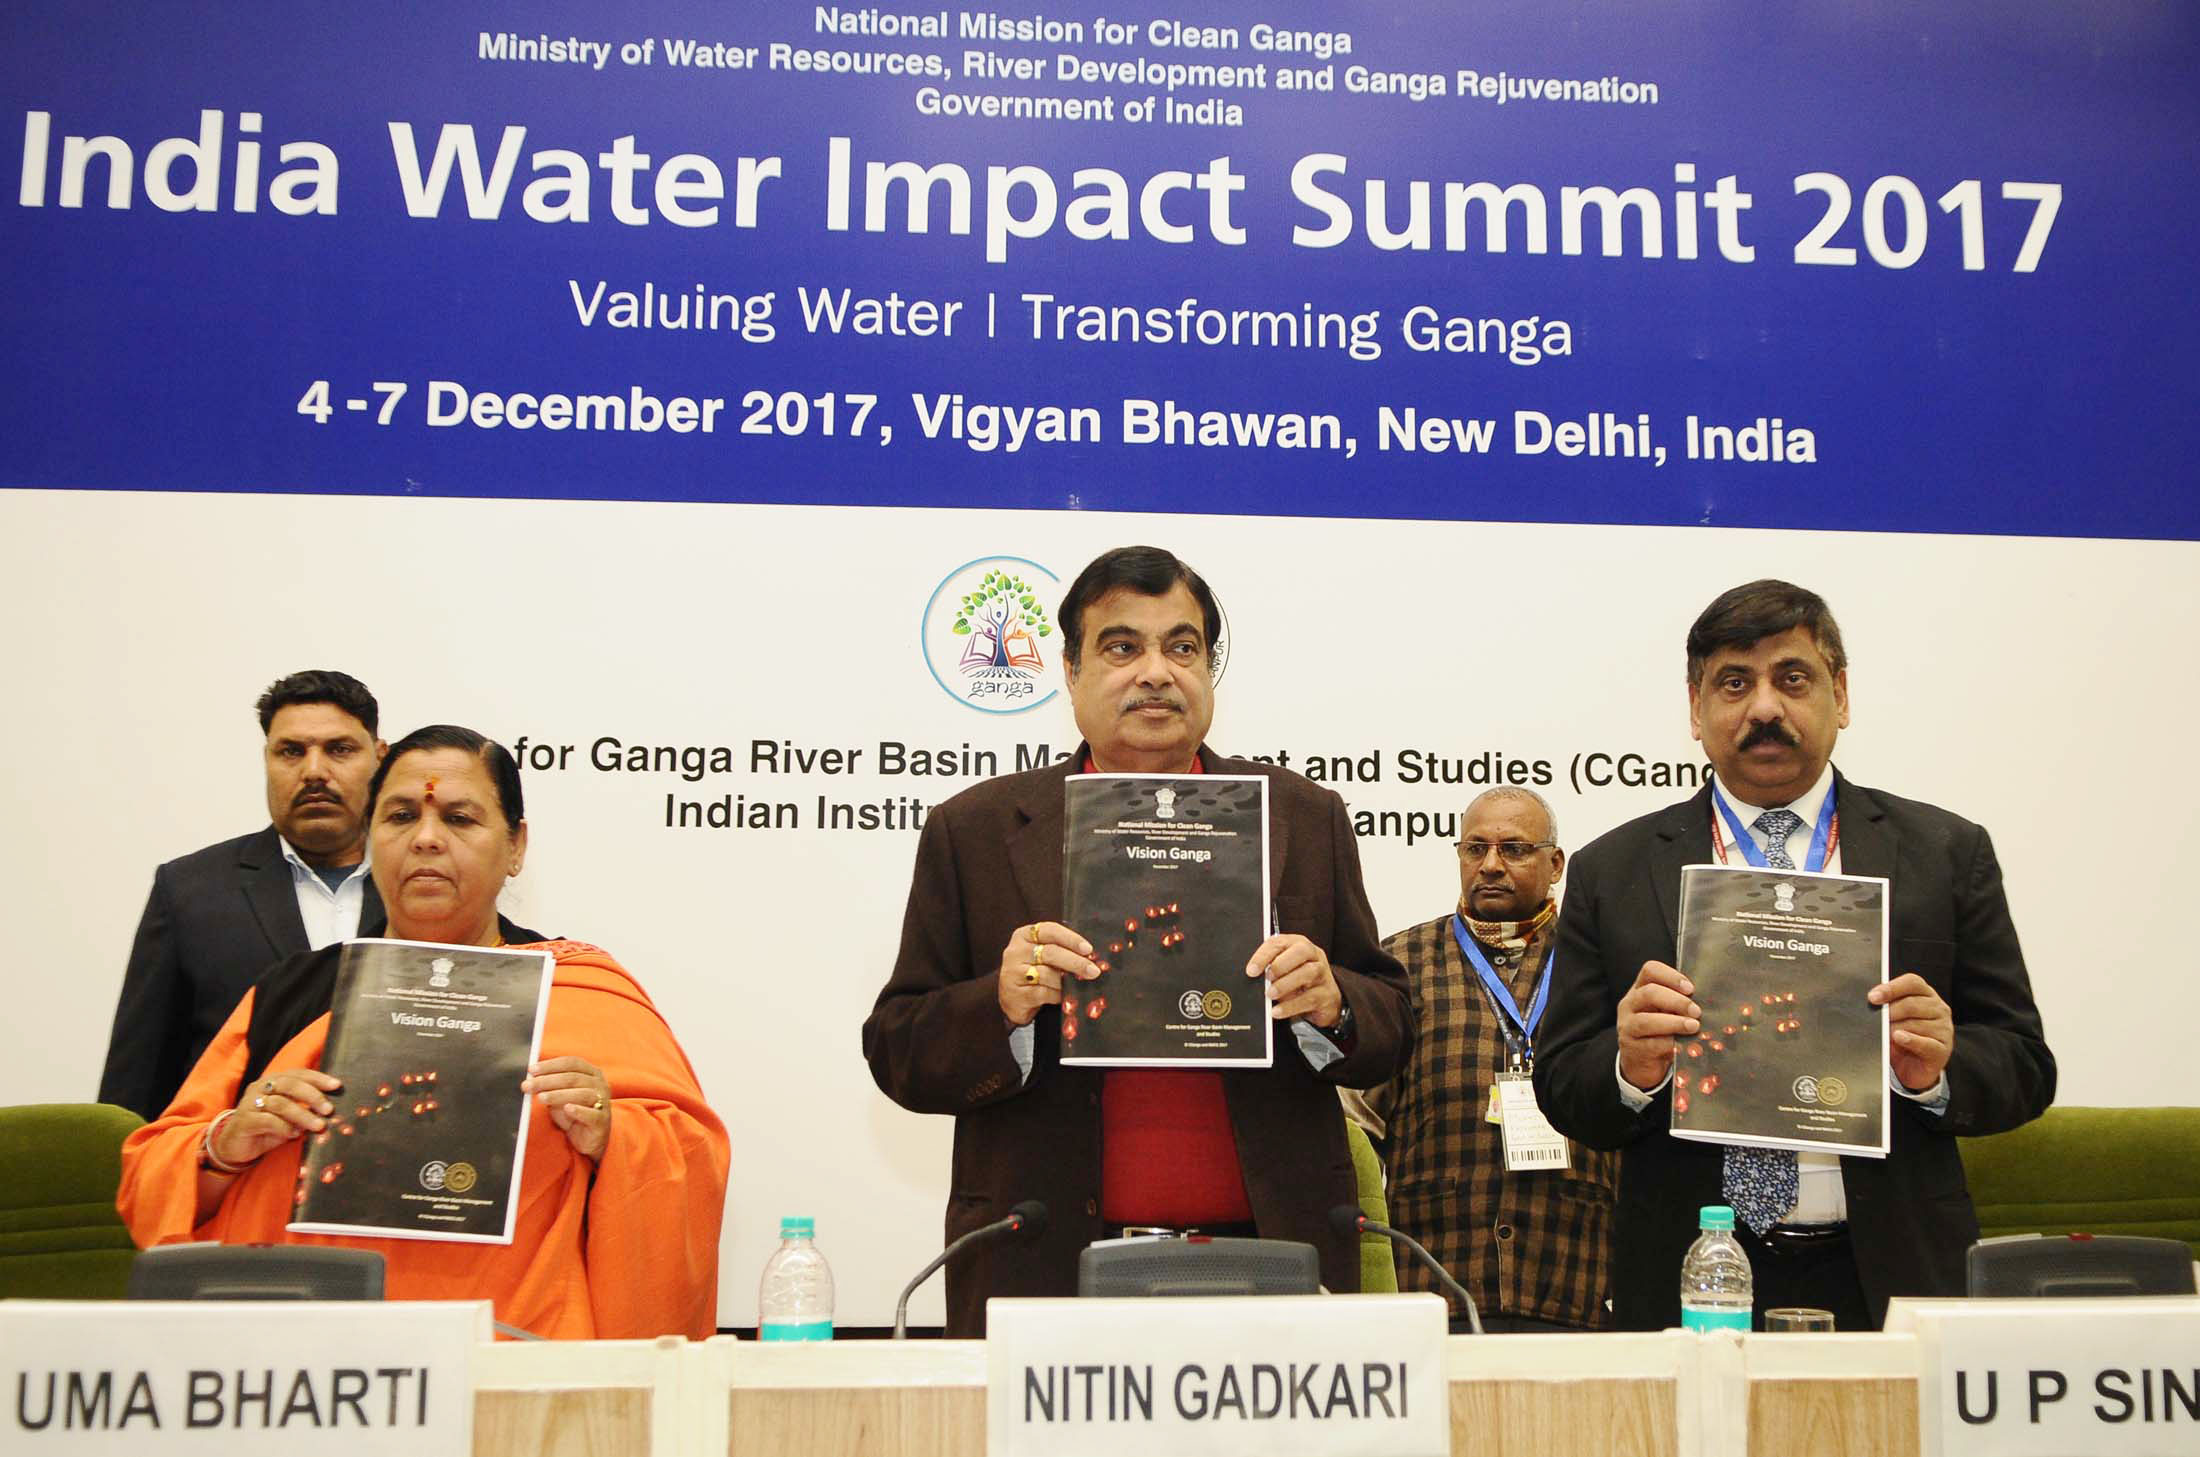 Union Ministers of India release Vision Ganga today